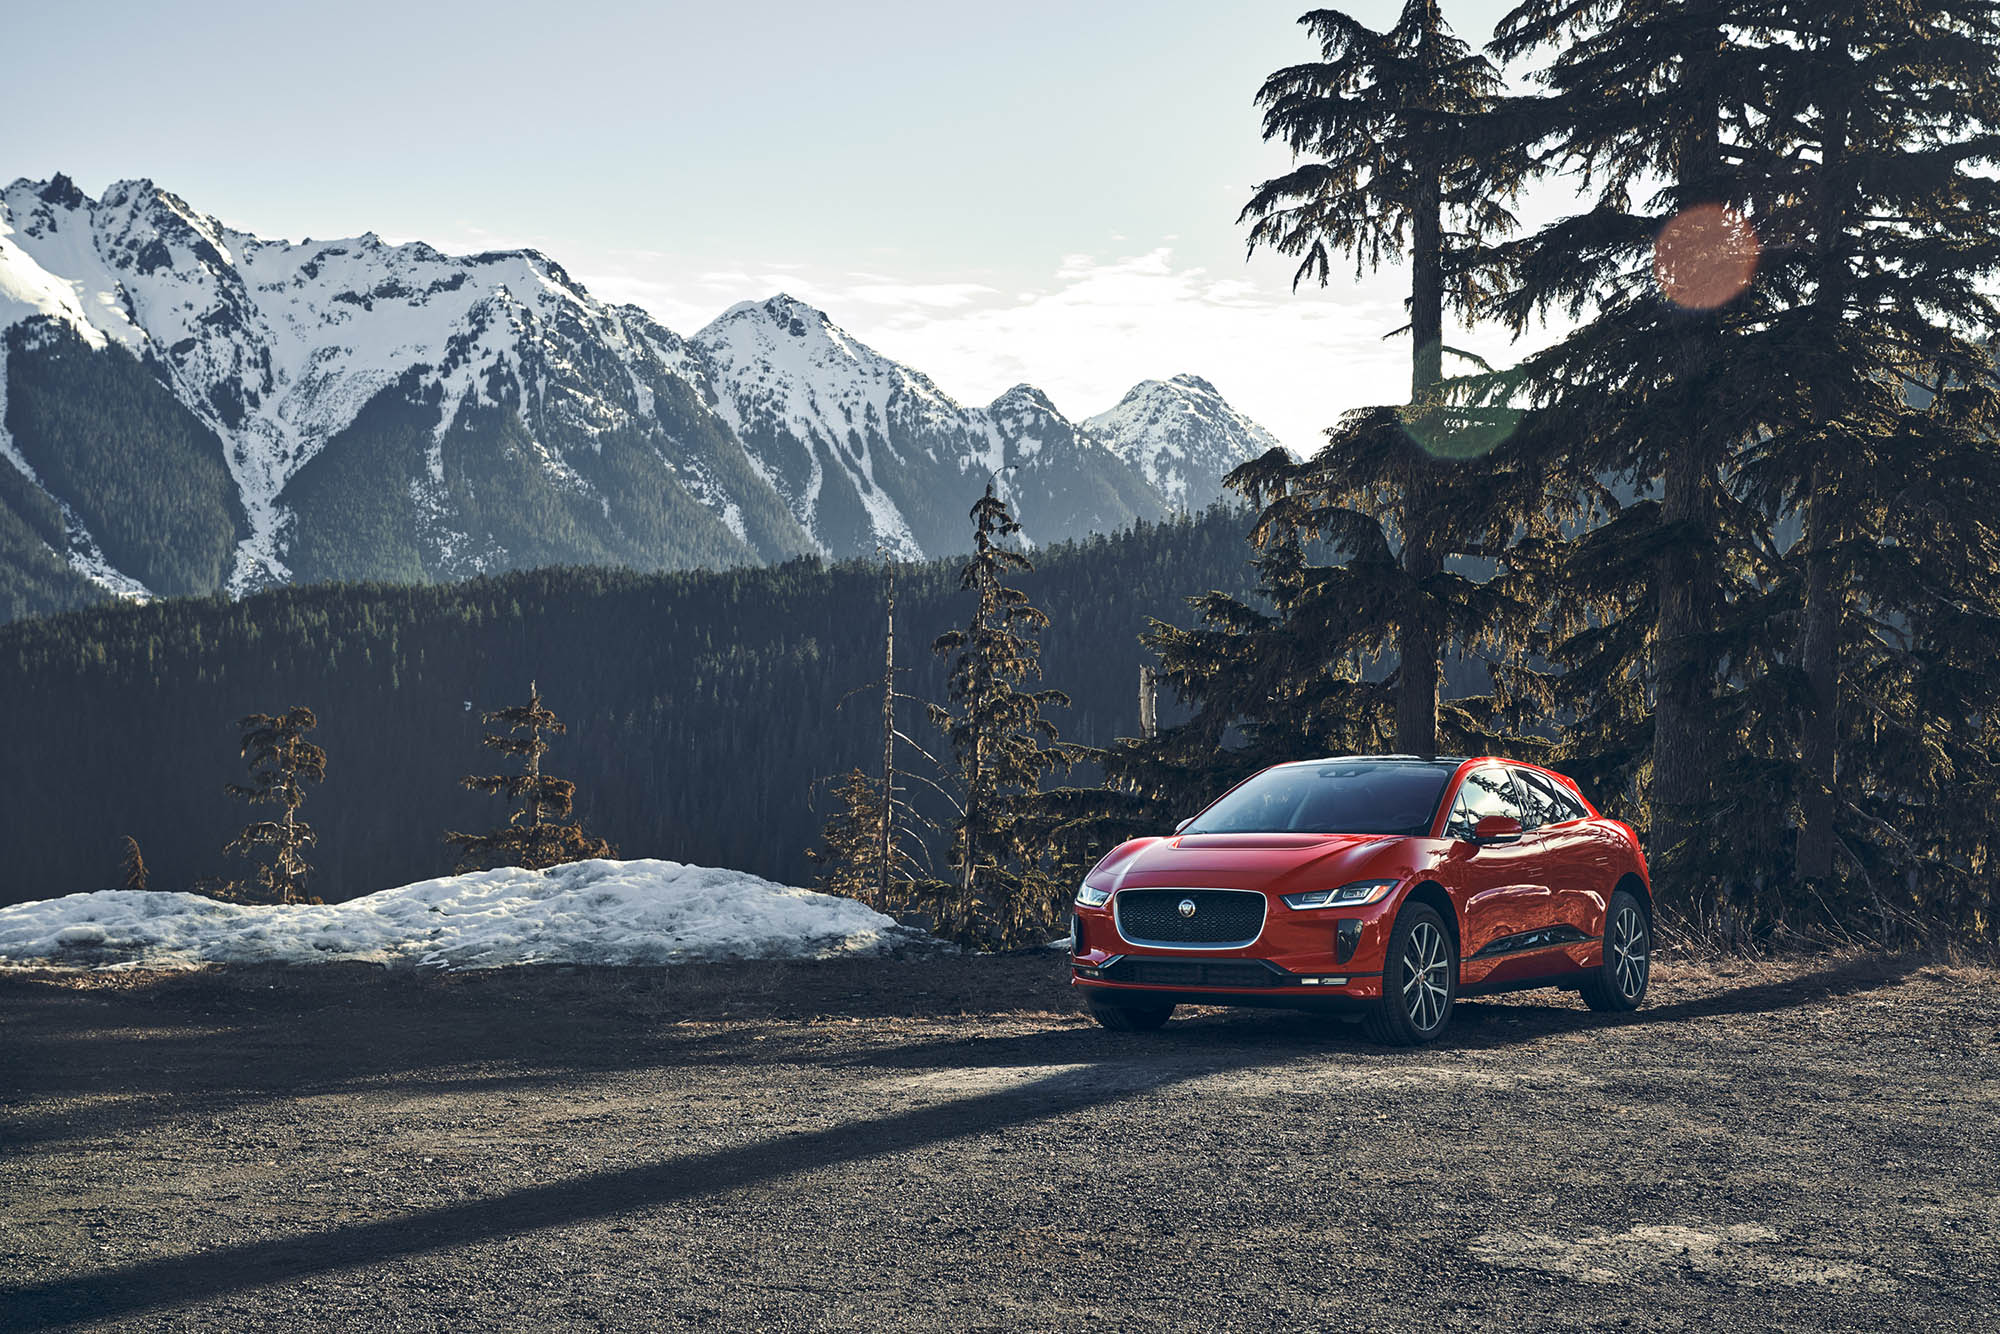 19-045_JLR_iPace_winter_SHOT_03_COMP01_FED_PR1